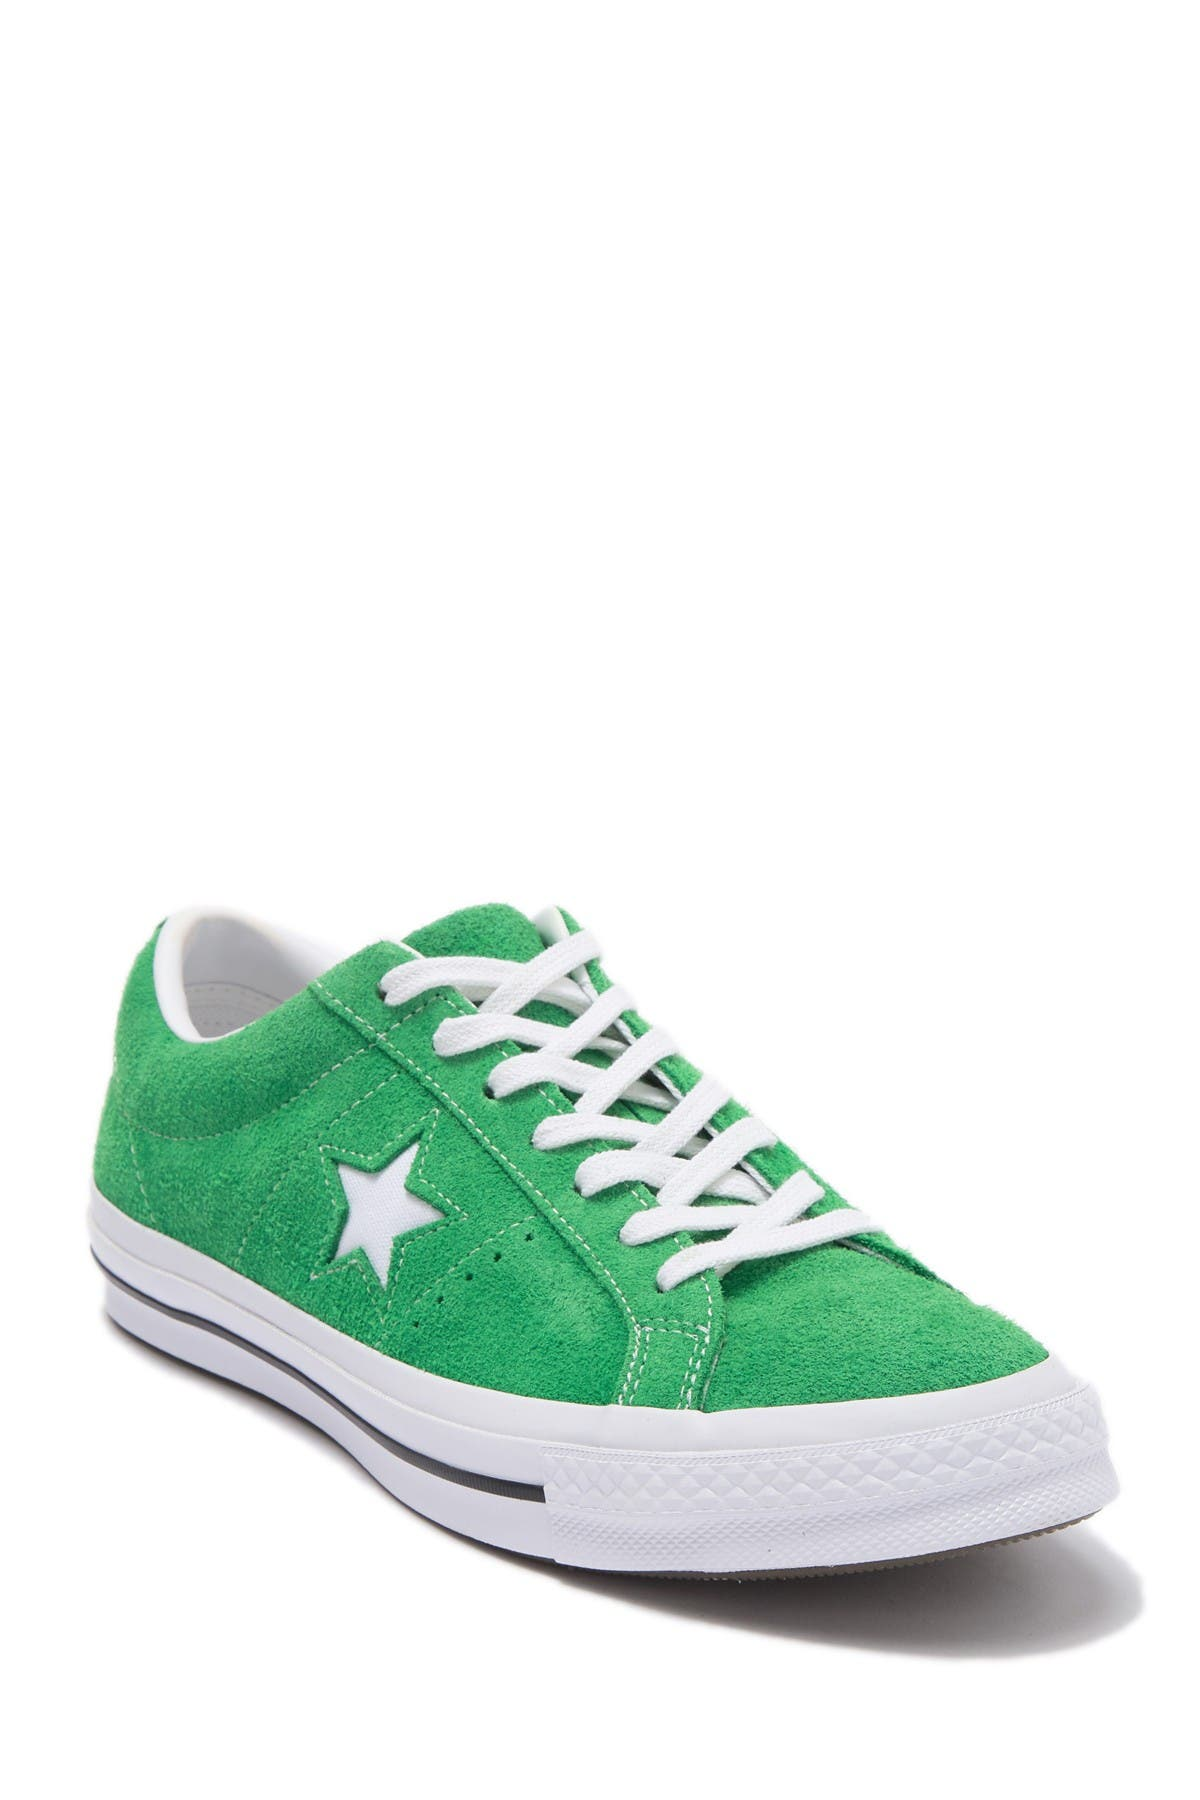 Converse | One Star Oxford Suede Green